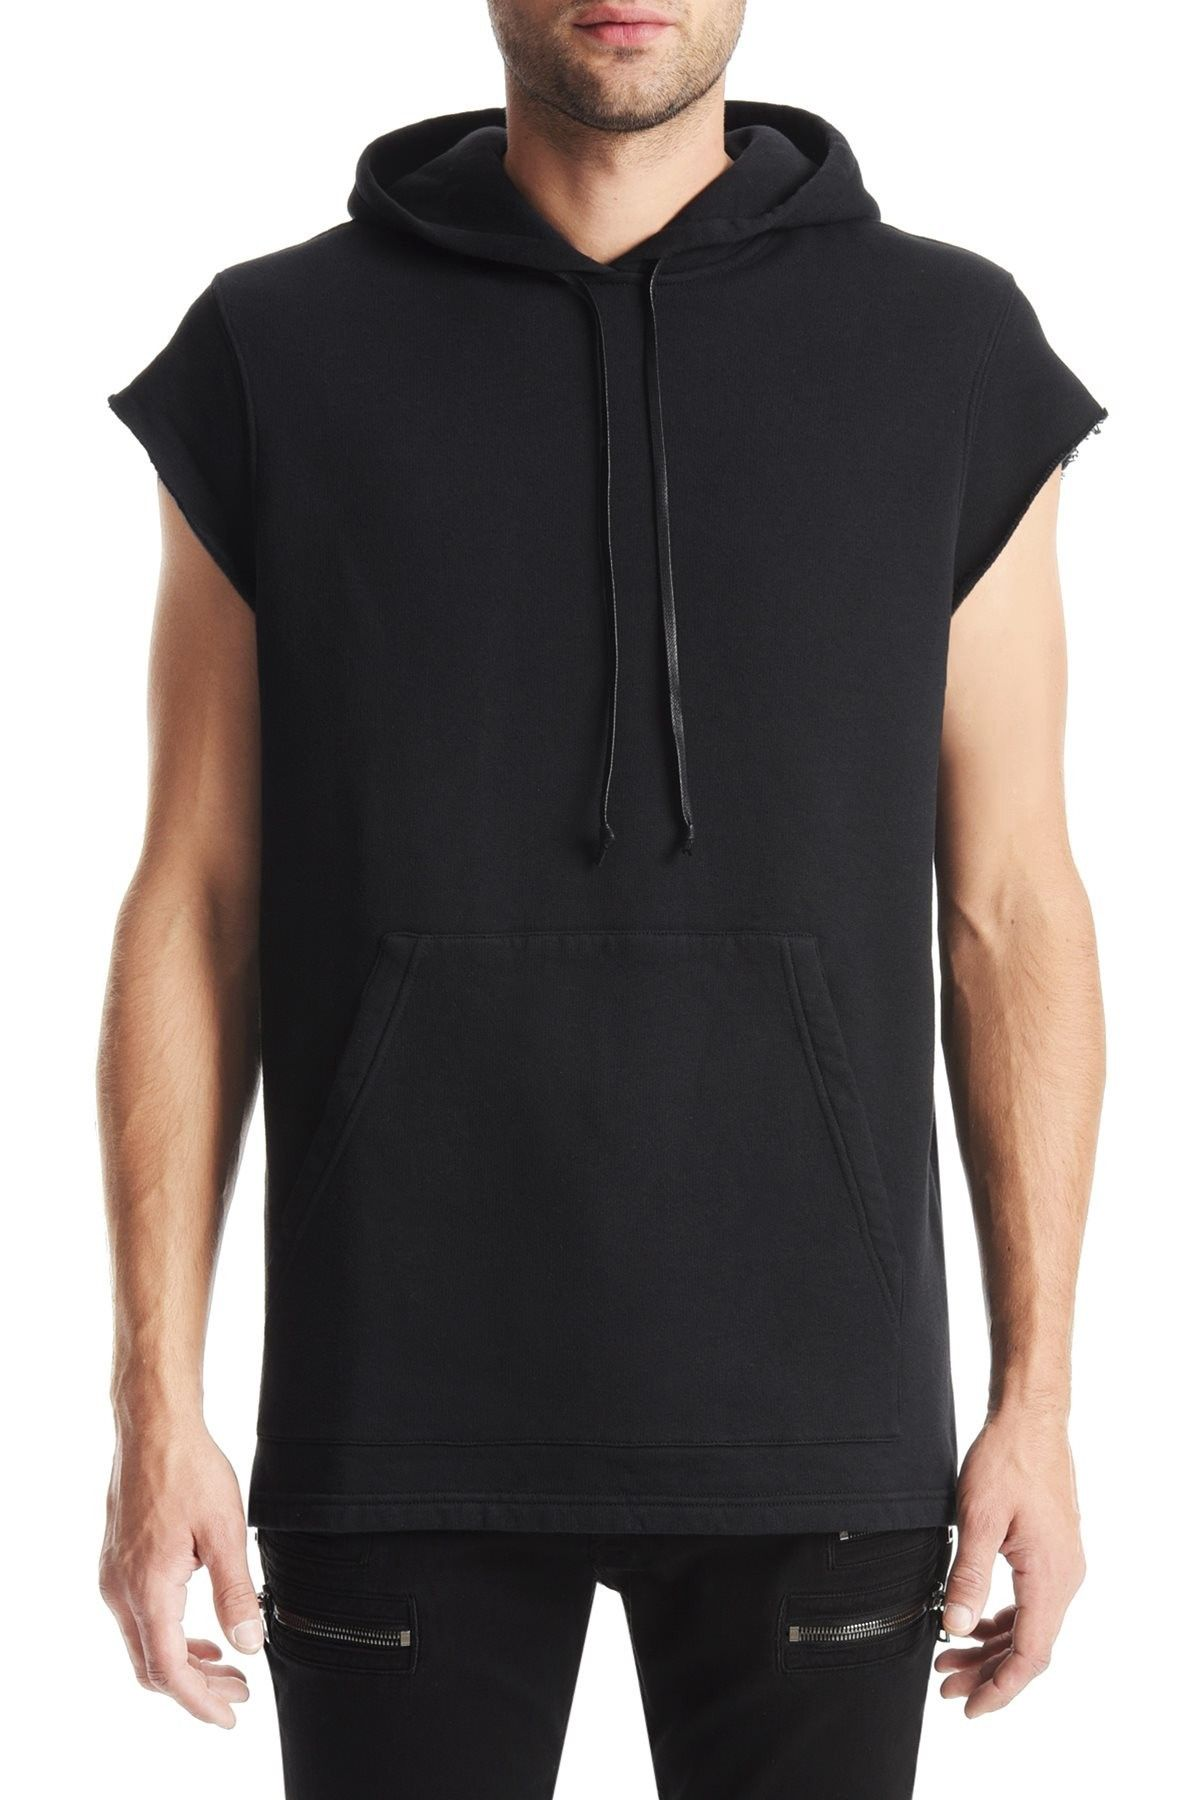 HUDSON Sleeveless Pullover Hoodie - Black. #hudson #cloth ...